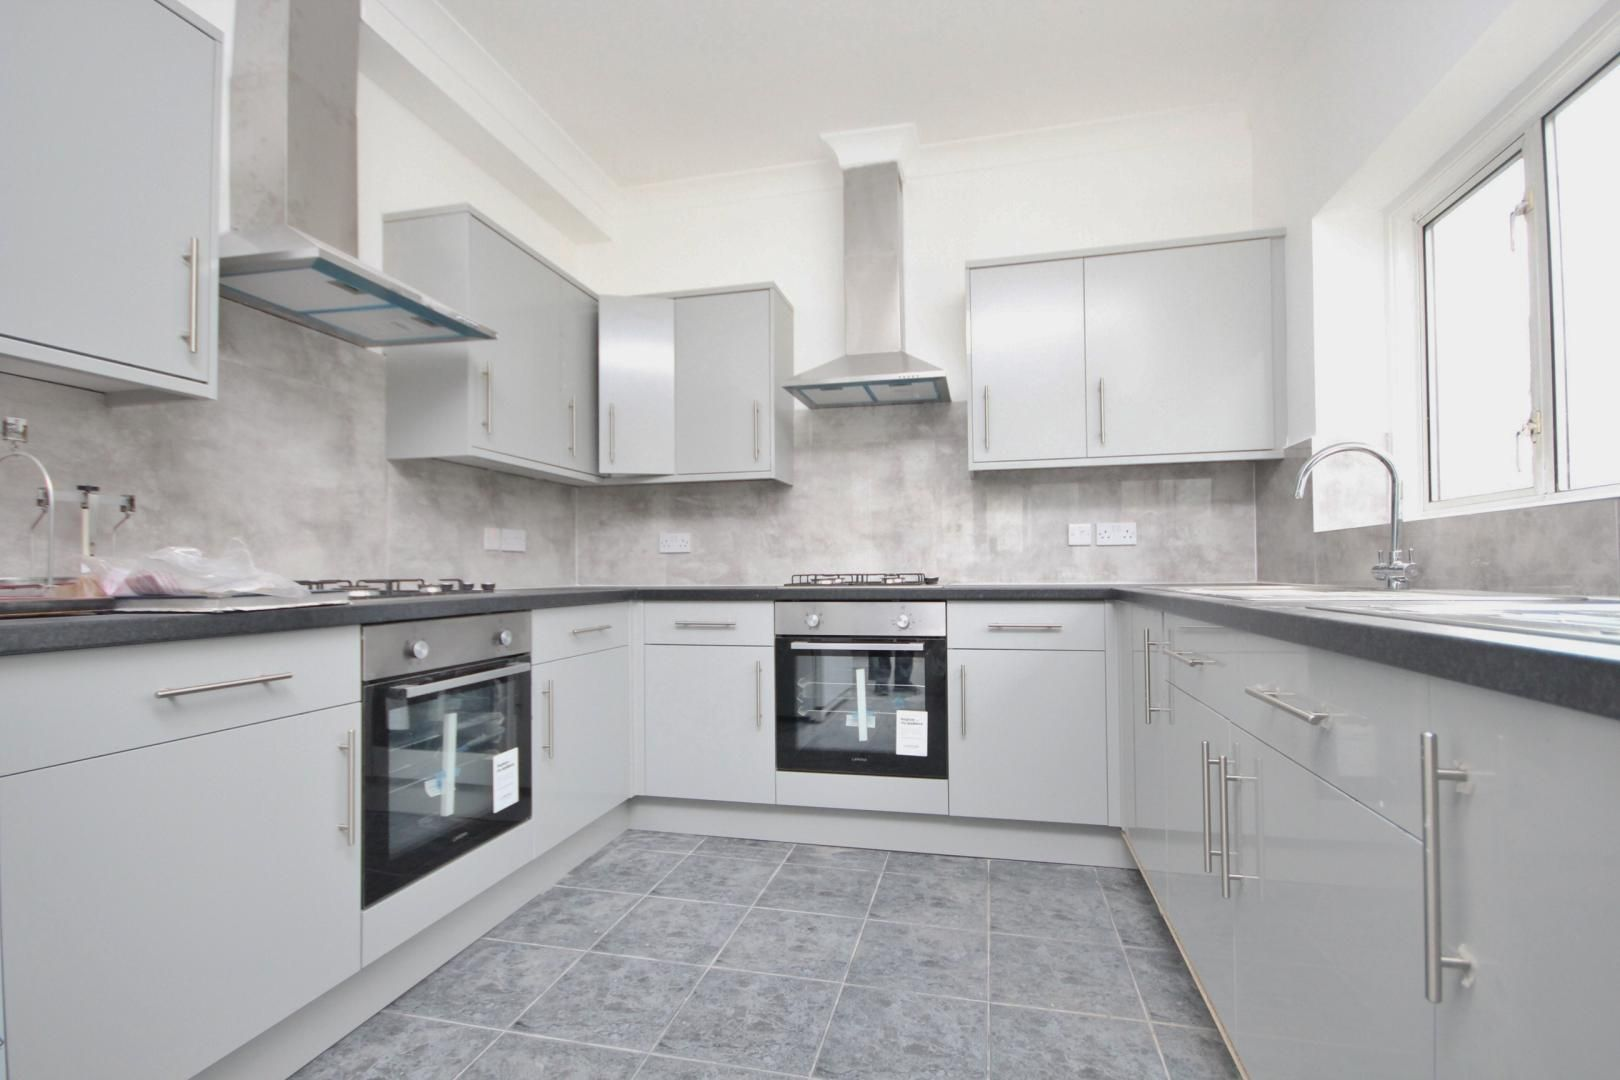 1 bed house to rent in Aldborough Road South - Property Image 1